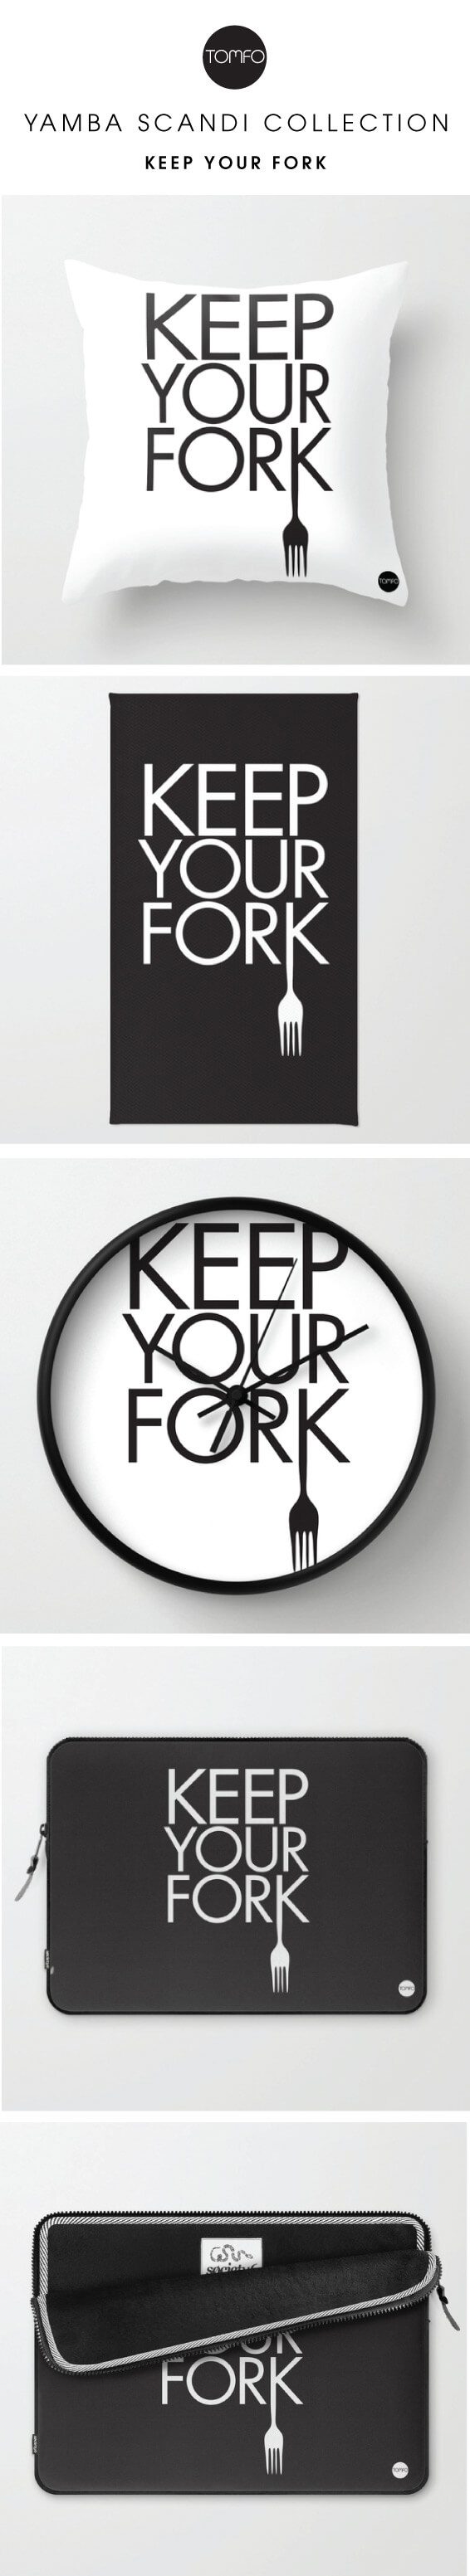 Keep-your-forkCLOCK-AND-LAPTOP-SKIN-Tomfo